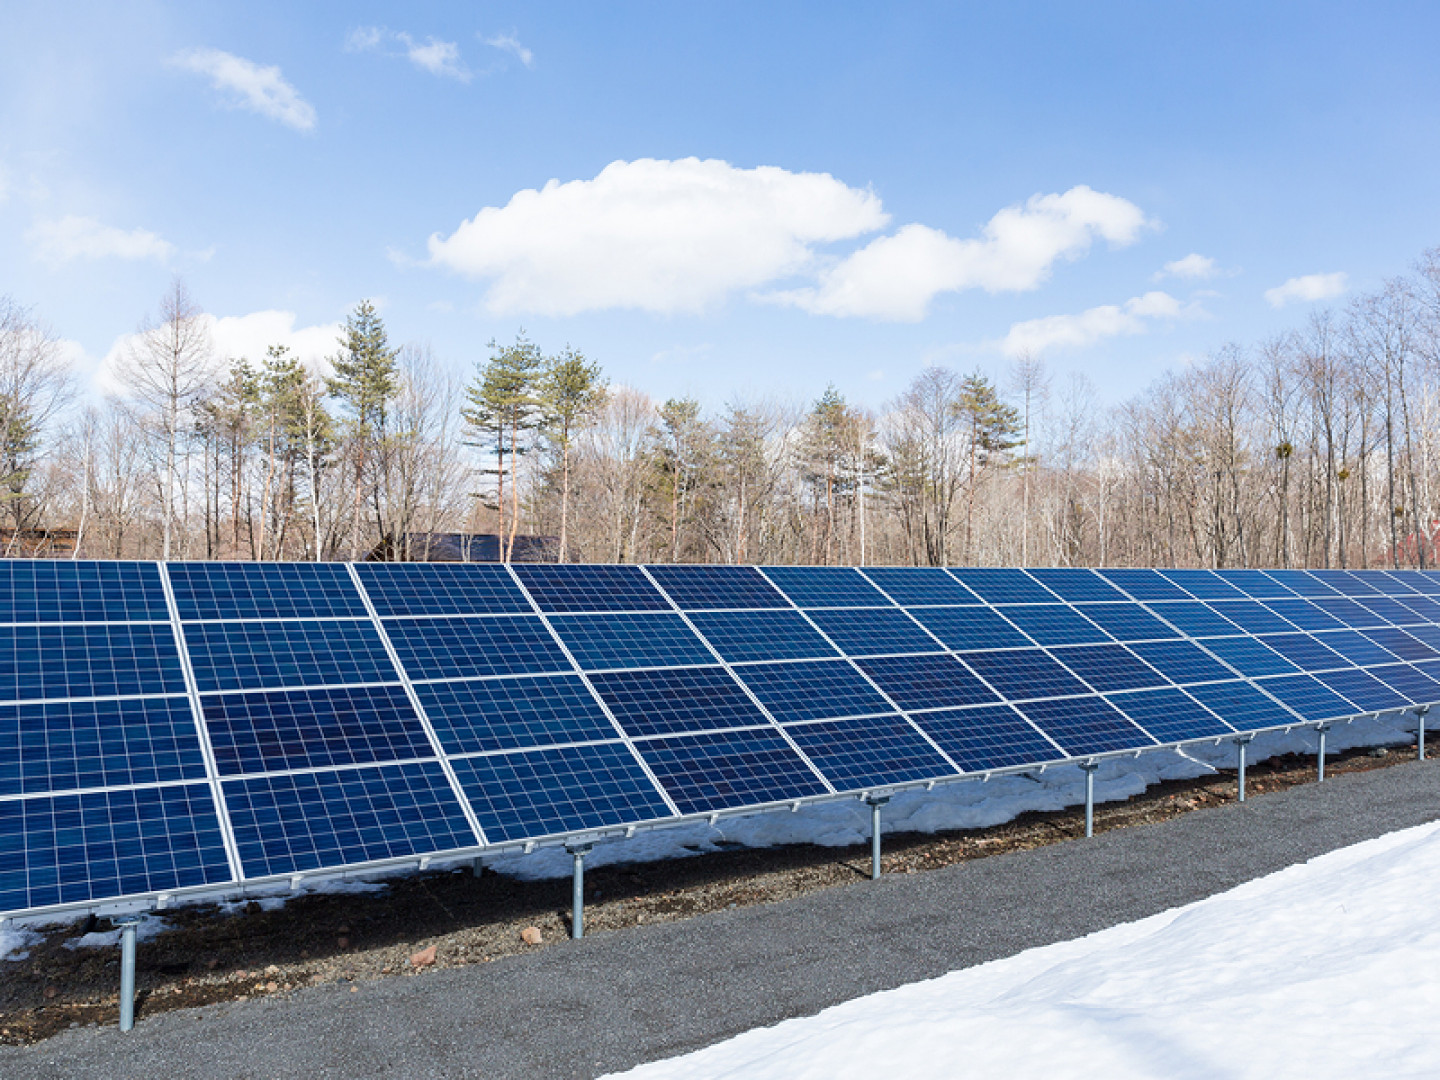 Commercial solar panel installation in Cherry Hill, NJ or King and Prussia, PA